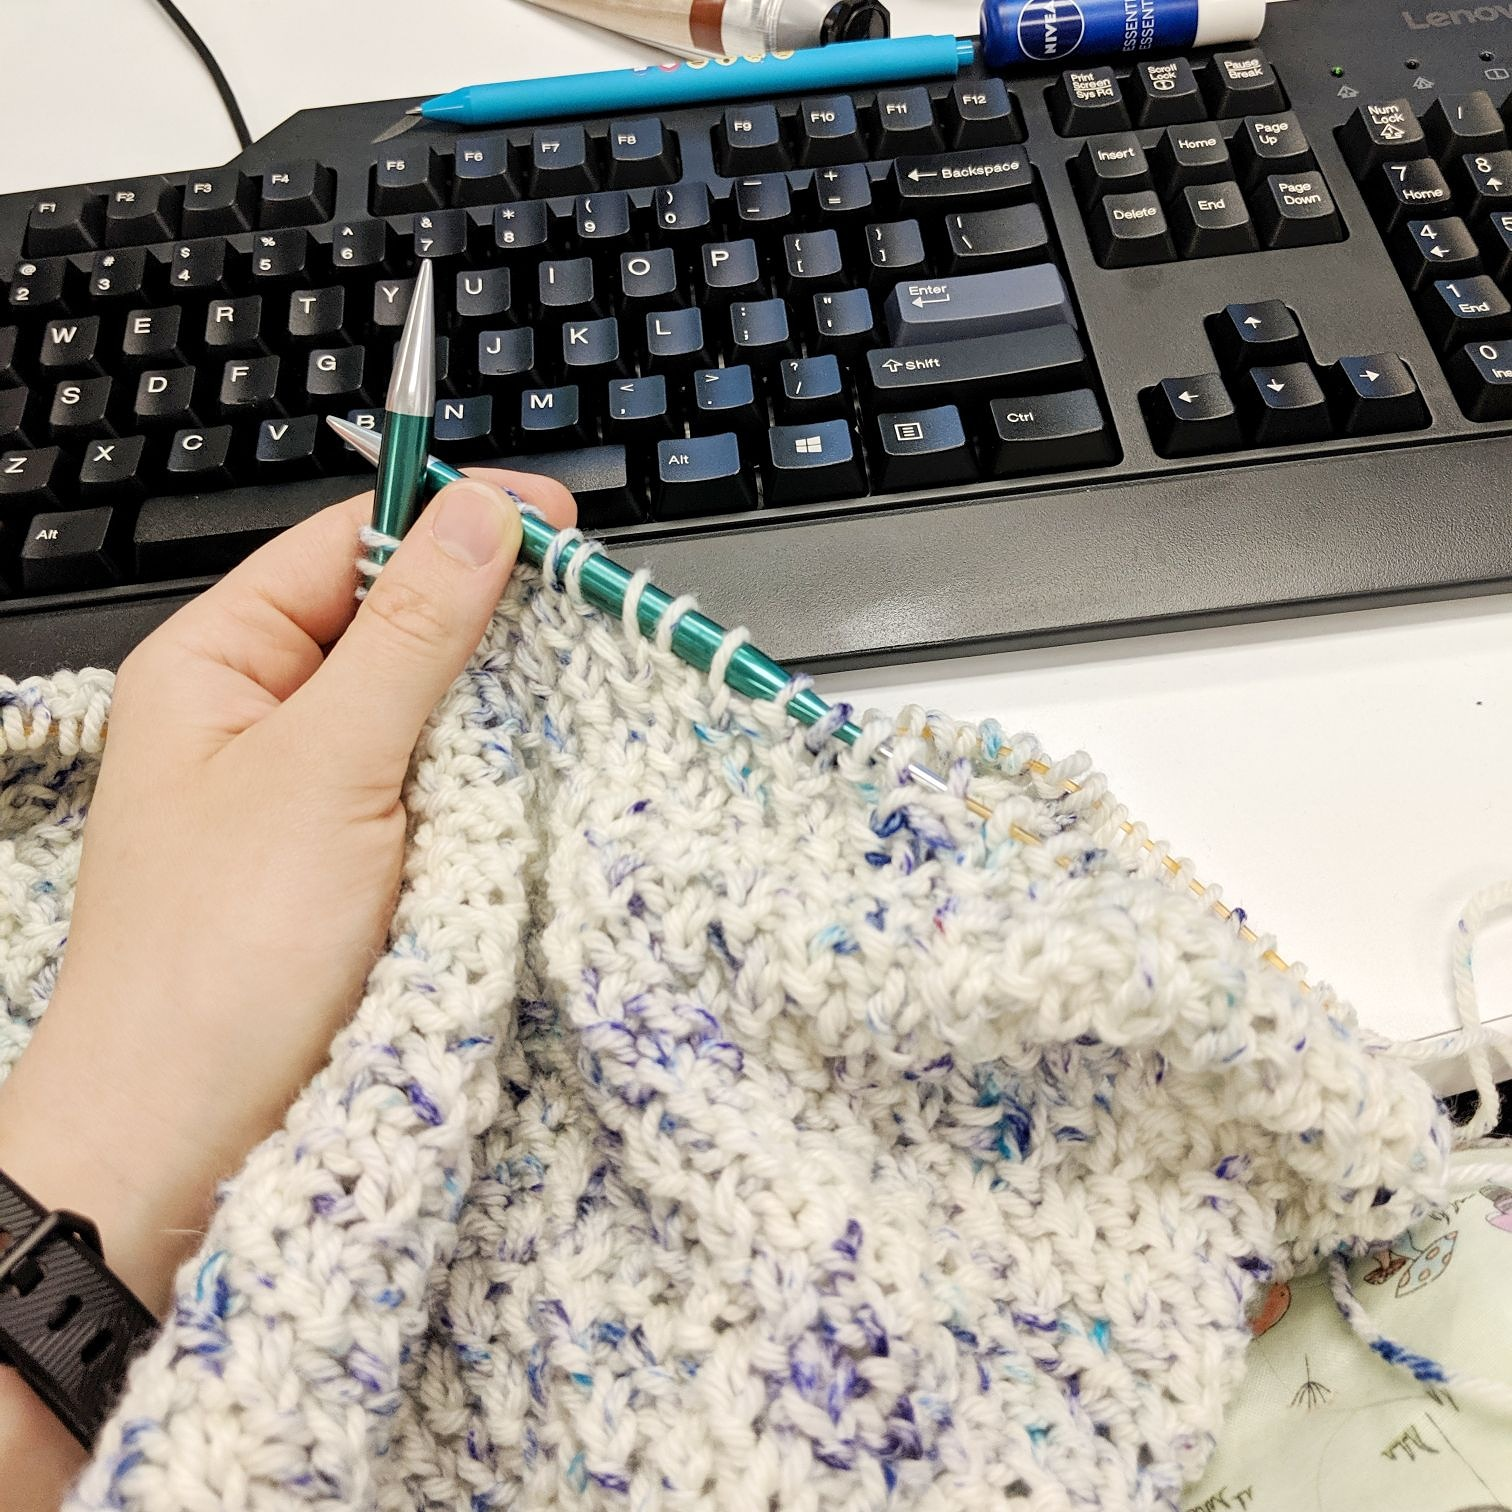 A white hand holds two knitting needles with white and blue knitting hanging off, on top of a white desk, a keyboard is in the background